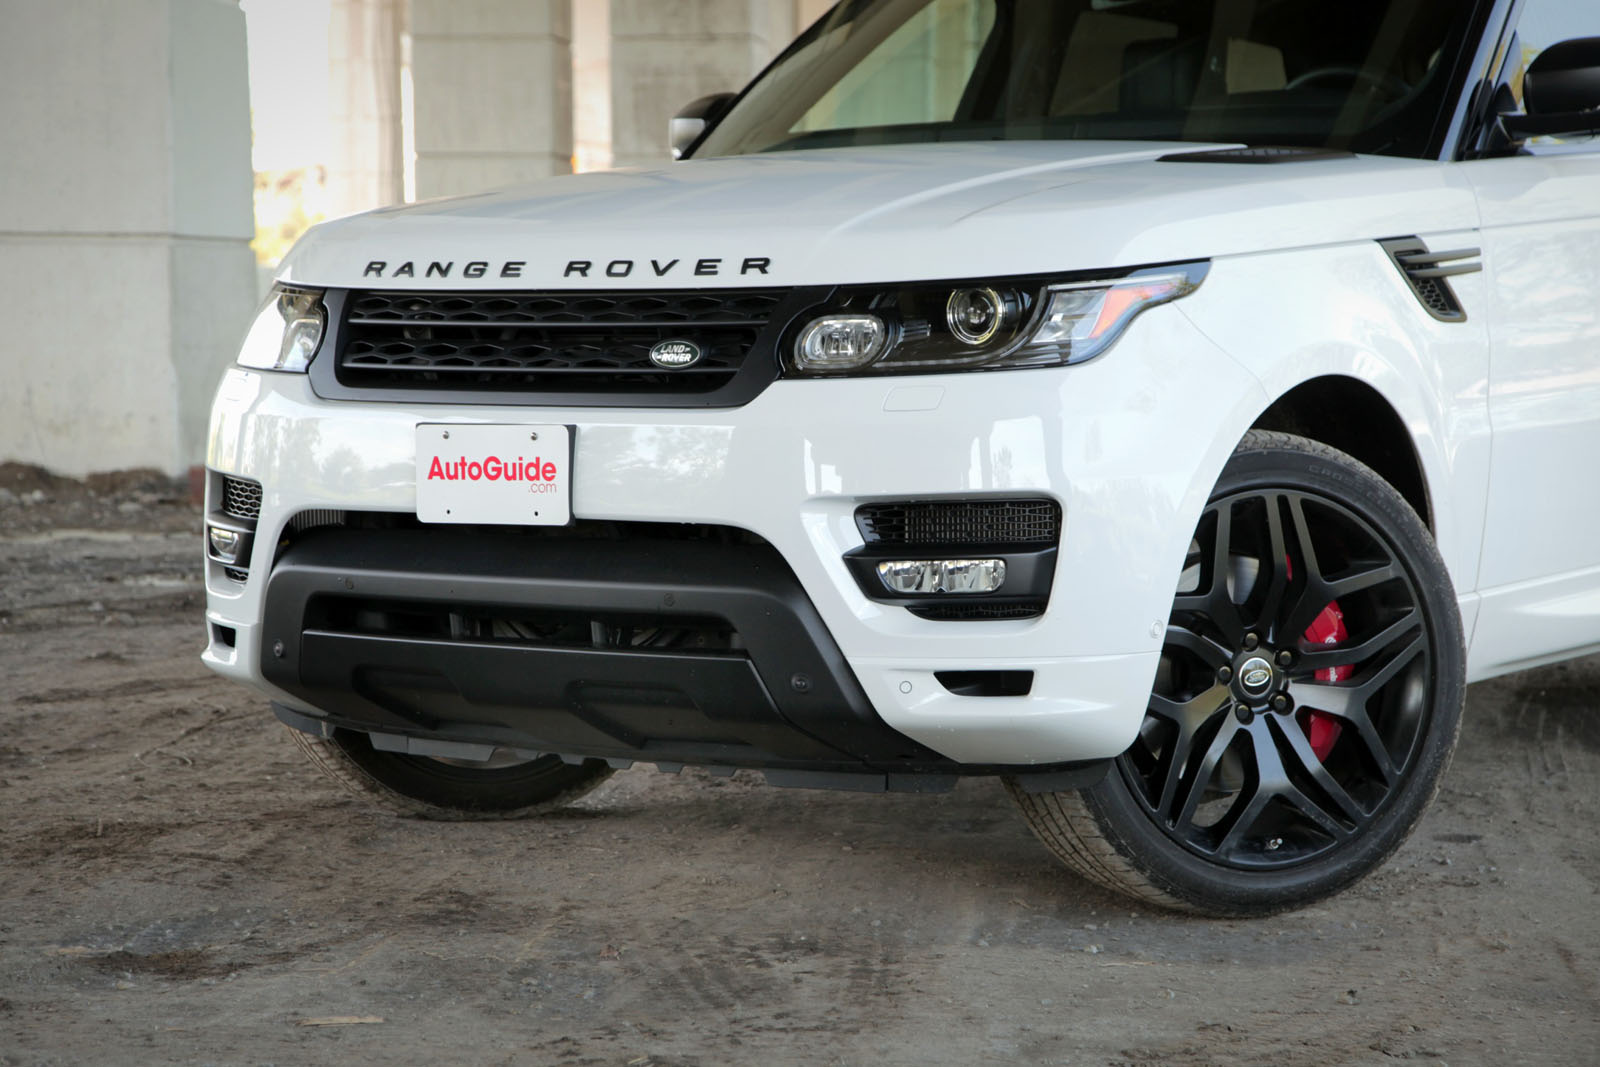 2015 land rover range rover sport autobiography review - autoguide